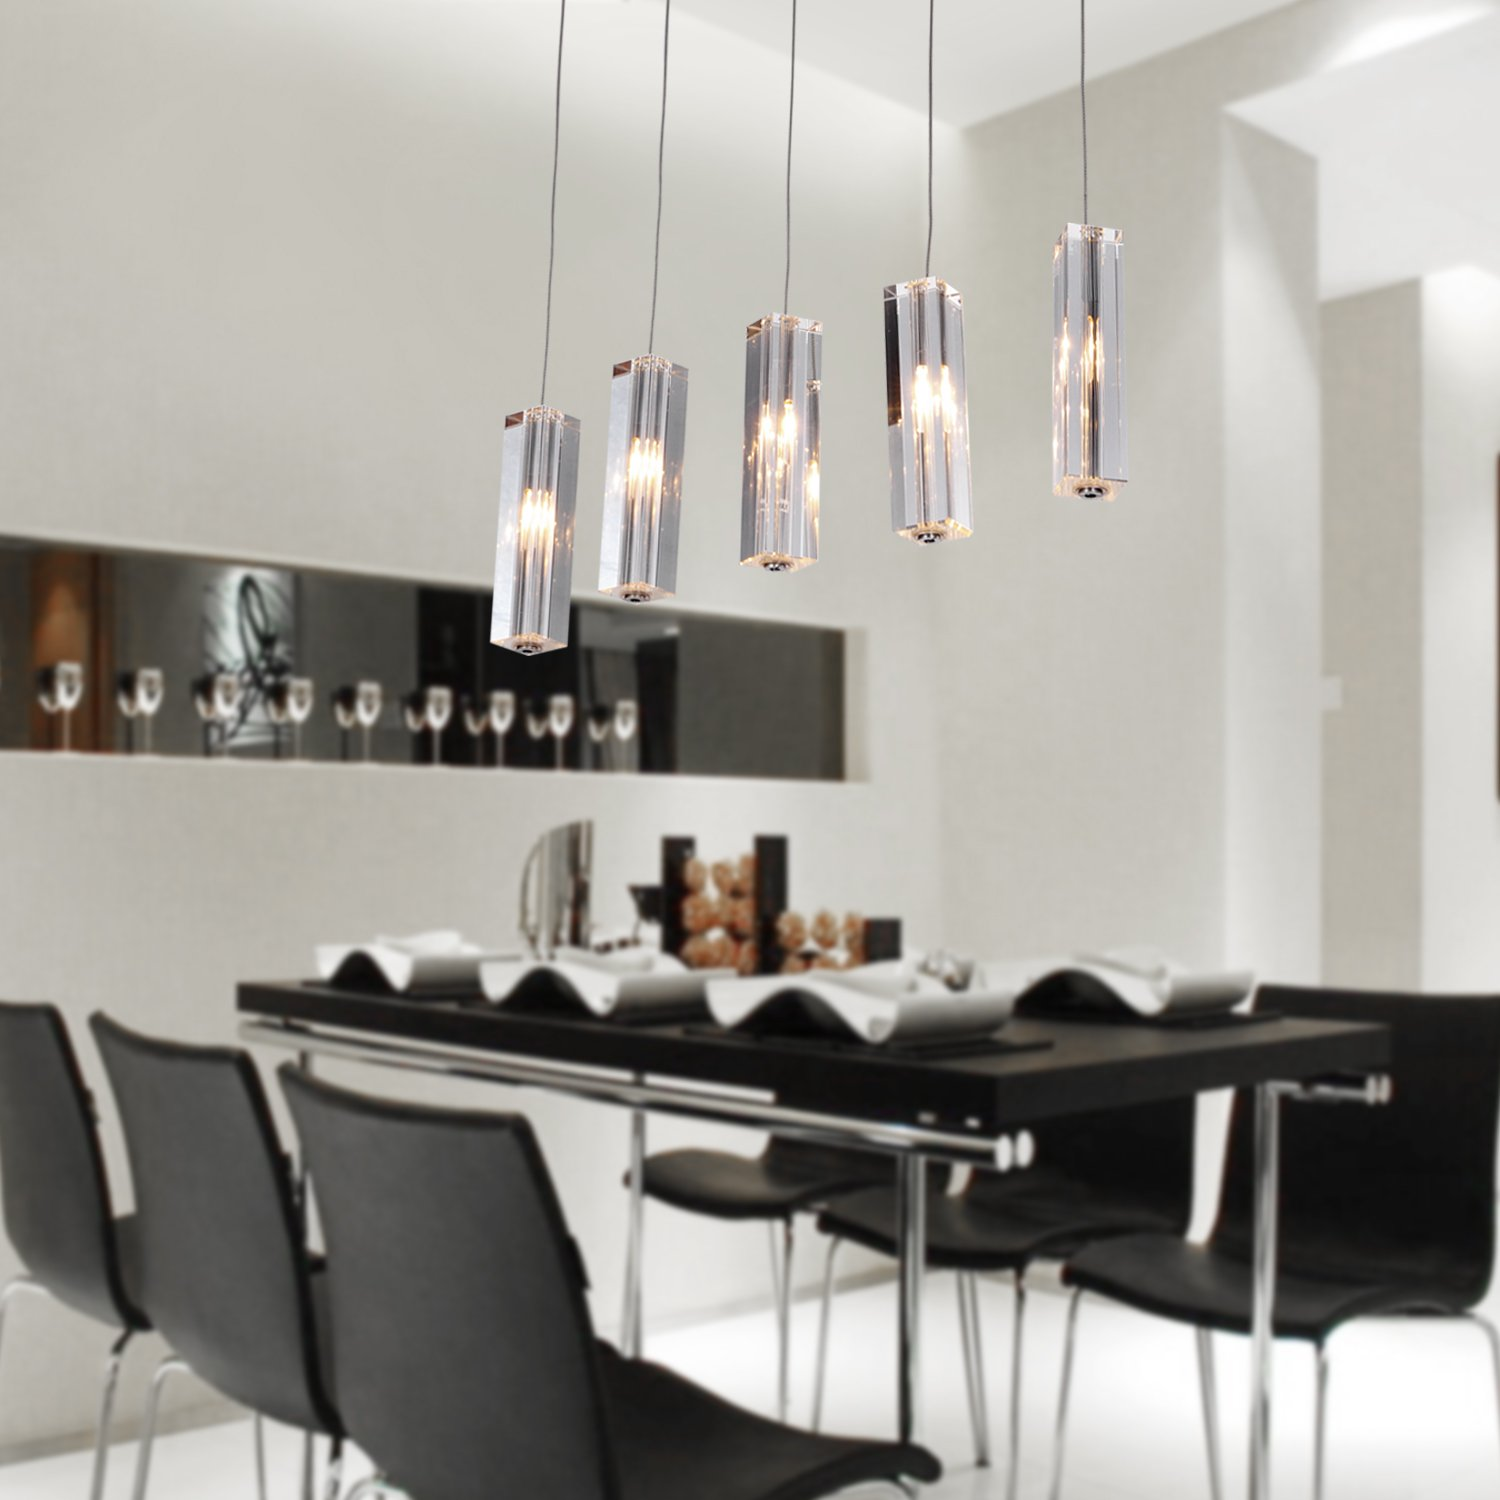 LightInTheBox Stainless Steel 5 Light Mini Bar Pendant With K9 Crystal Drop Island Lights Ceiling Fixture For Dining Room